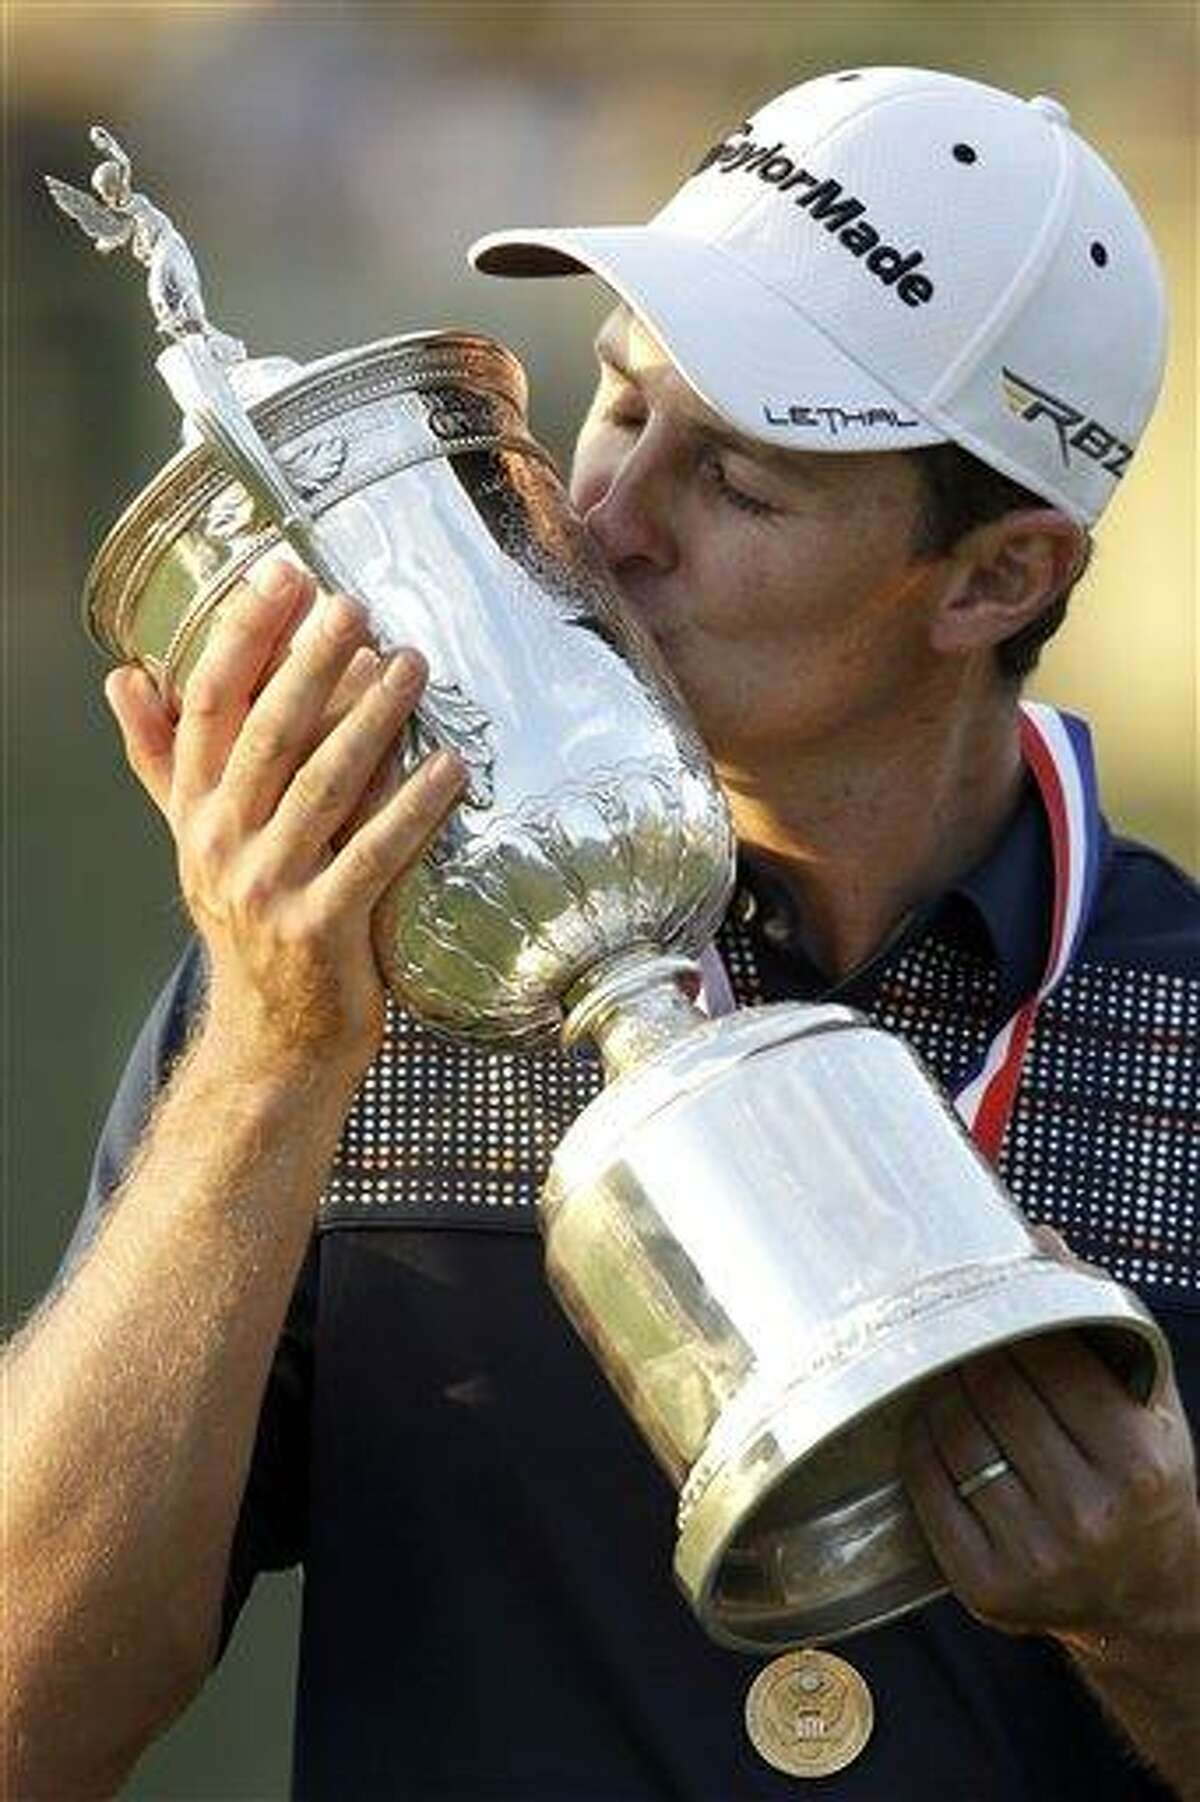 Justin Rose, of England, poses with the trophy after winning the U.S. Open golf tournament at Merion Golf Club, Sunday, June 16, 2013, in Ardmore, Pa. (AP Photo/Morry Gash)